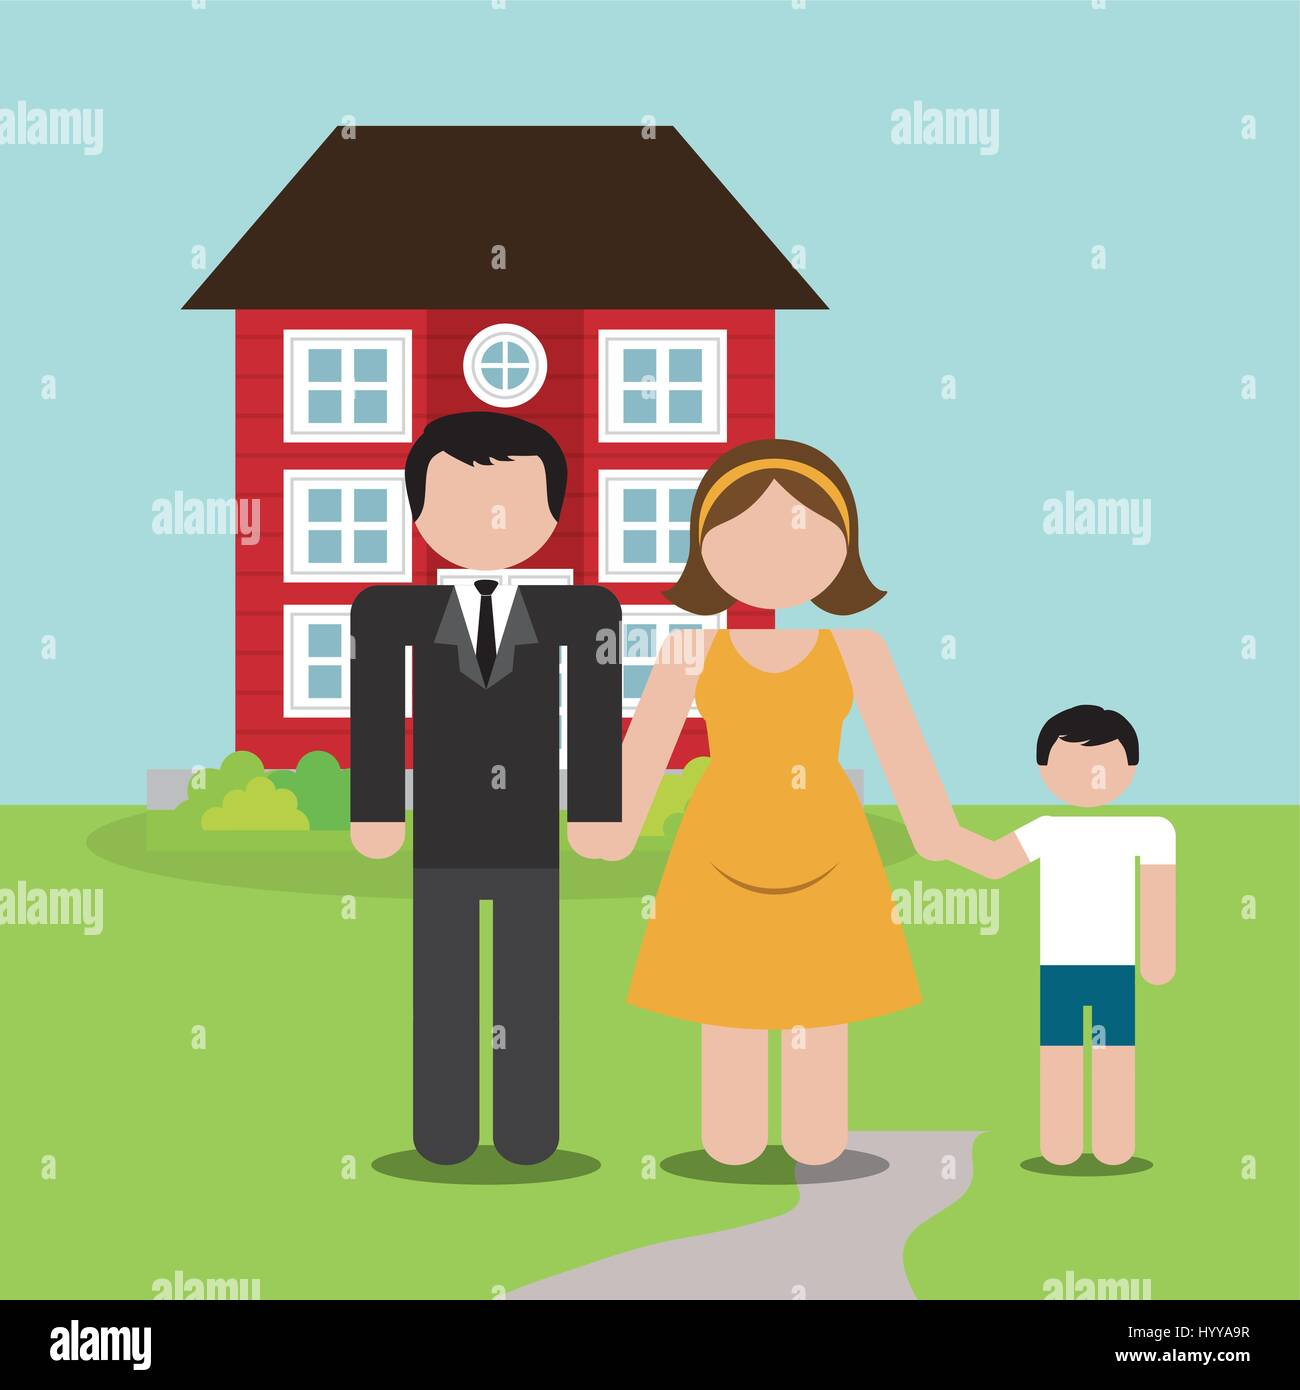 family home domestic image - Stock Vector